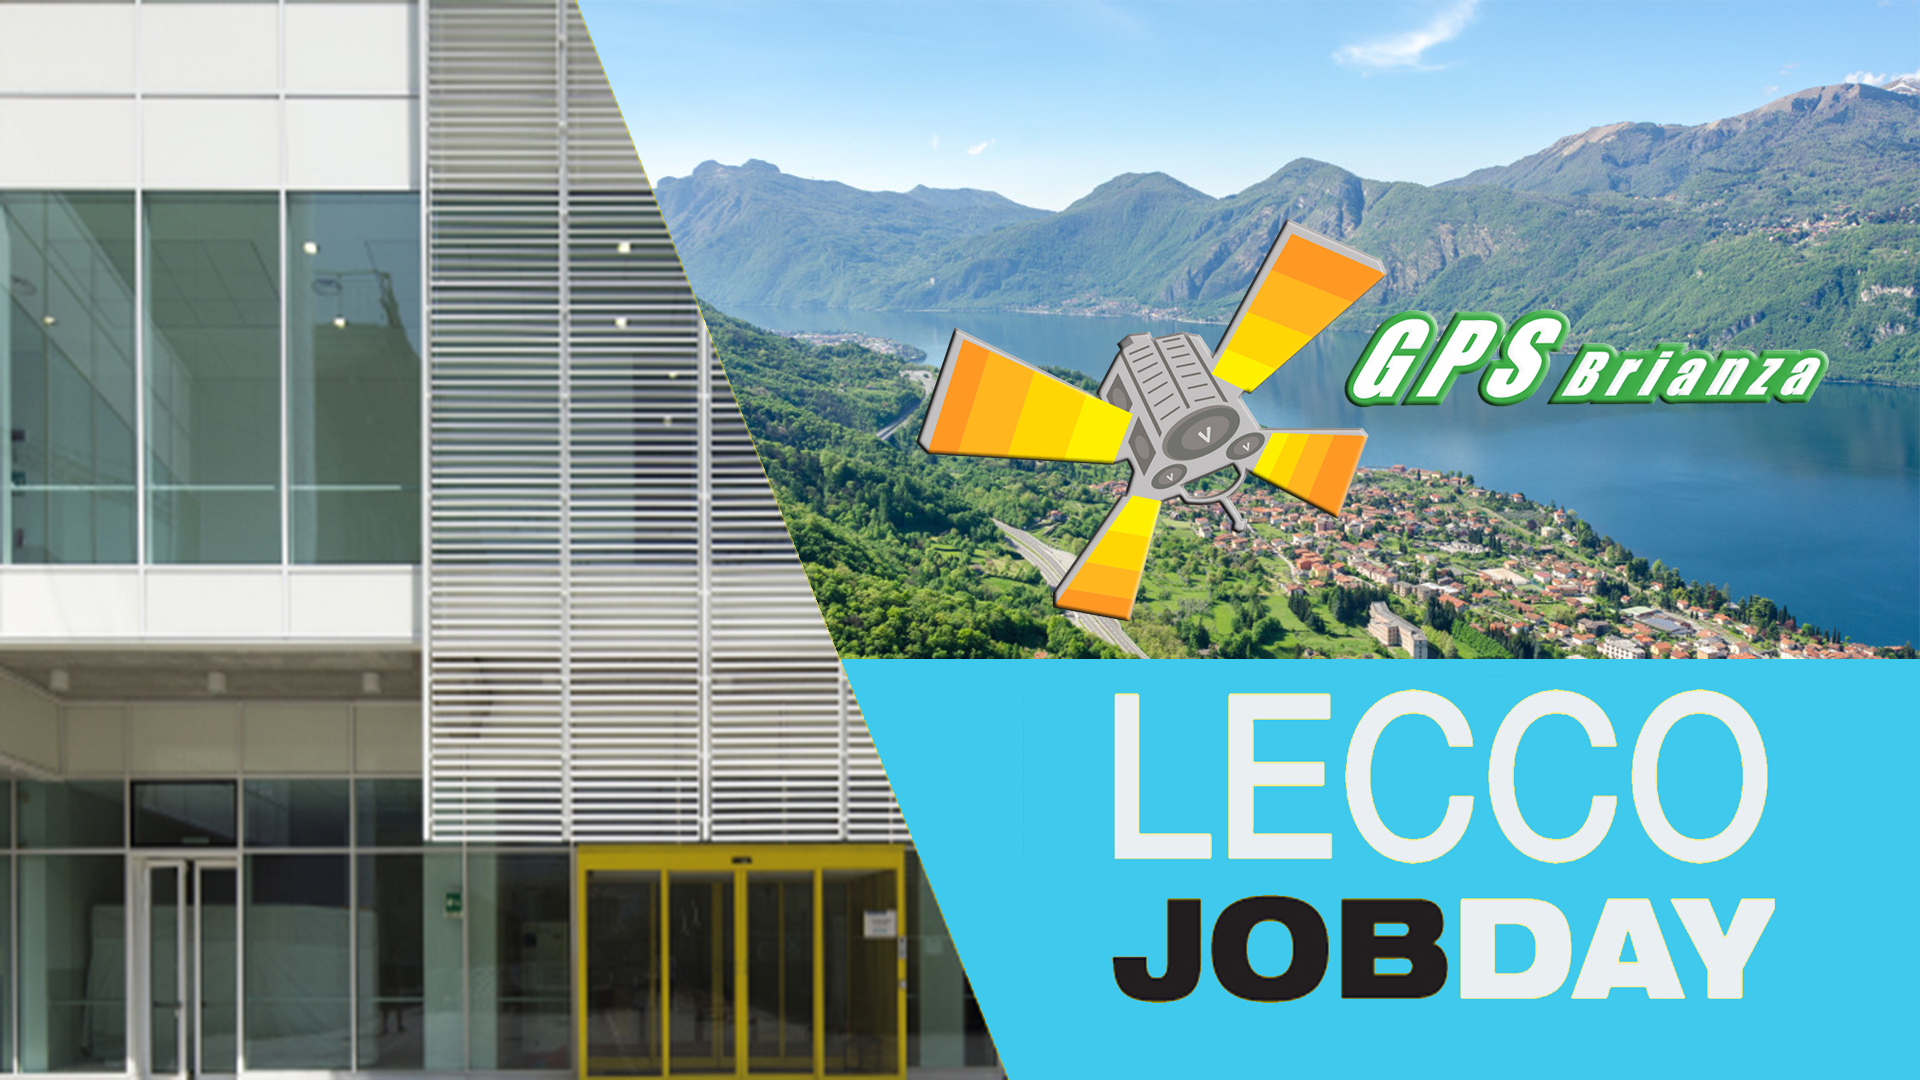 Lecco Job Day GPSBrianza